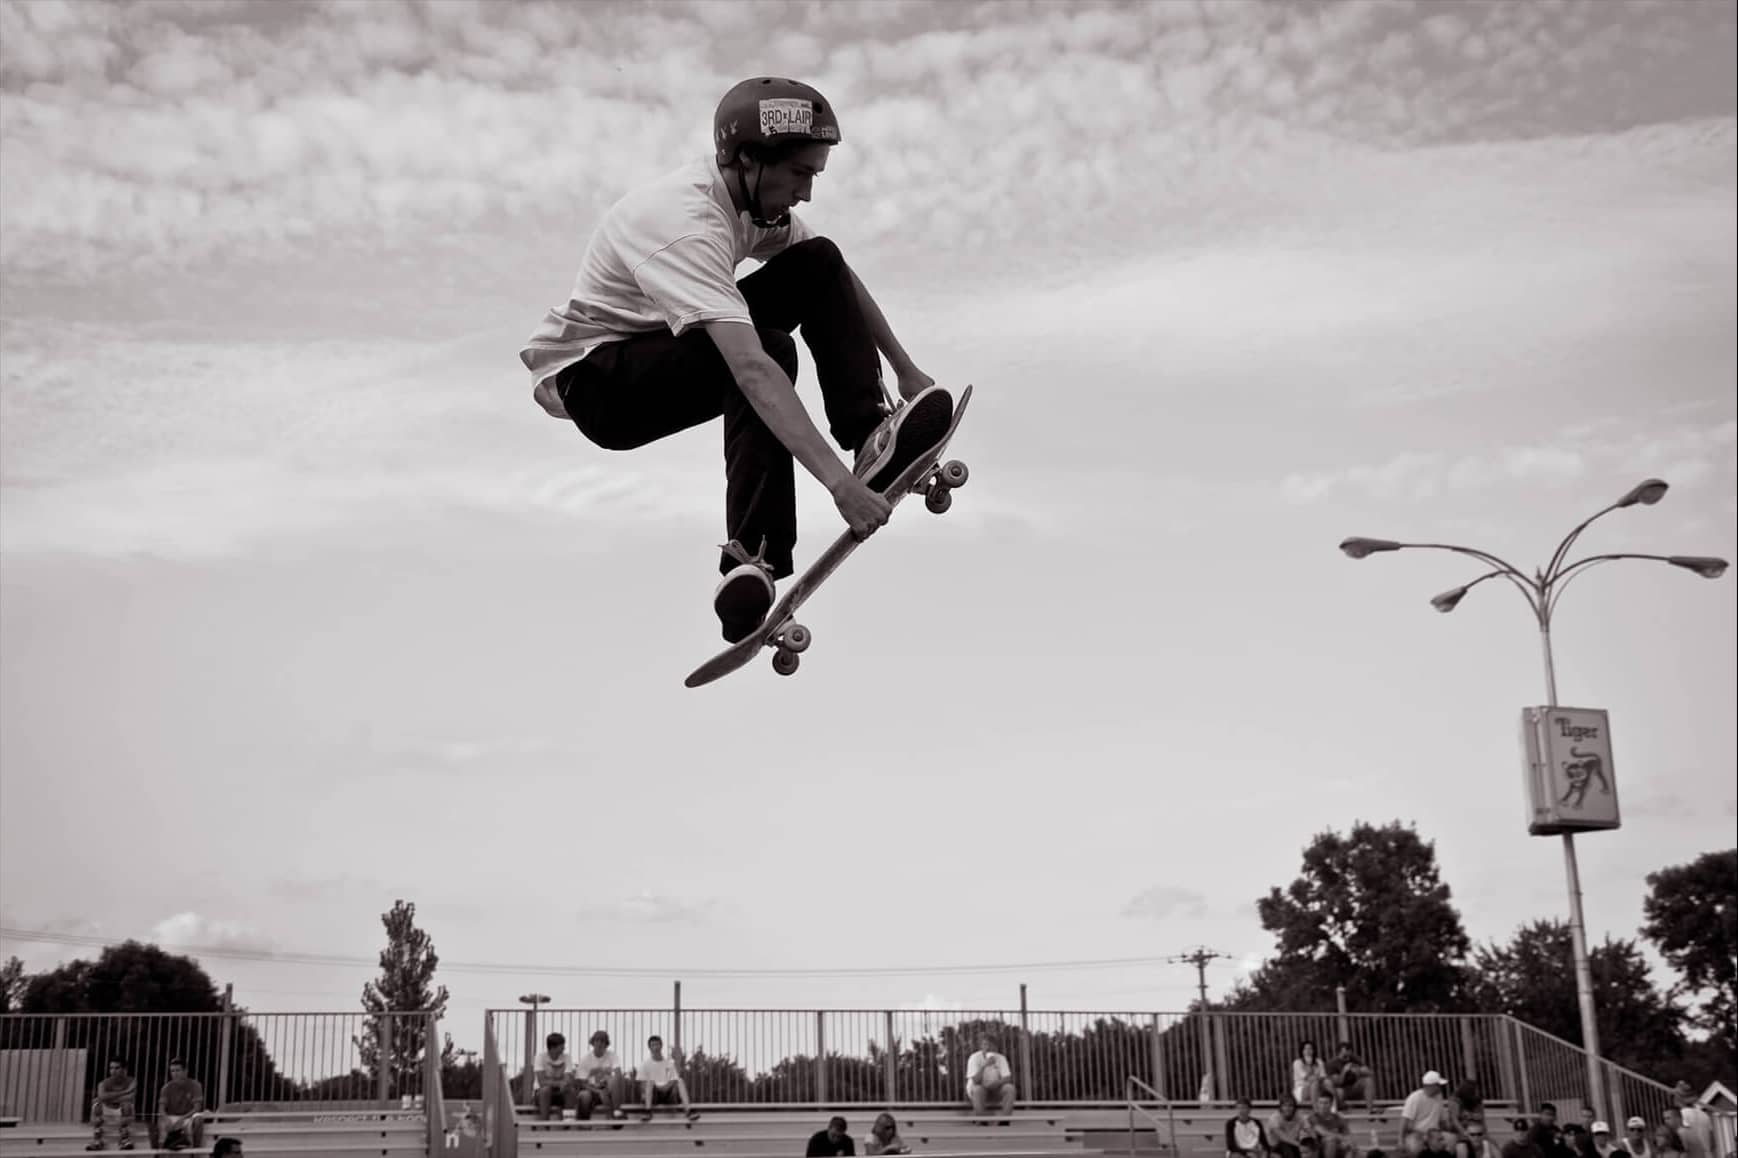 Skateboarder in the air at Minnesota State Fair